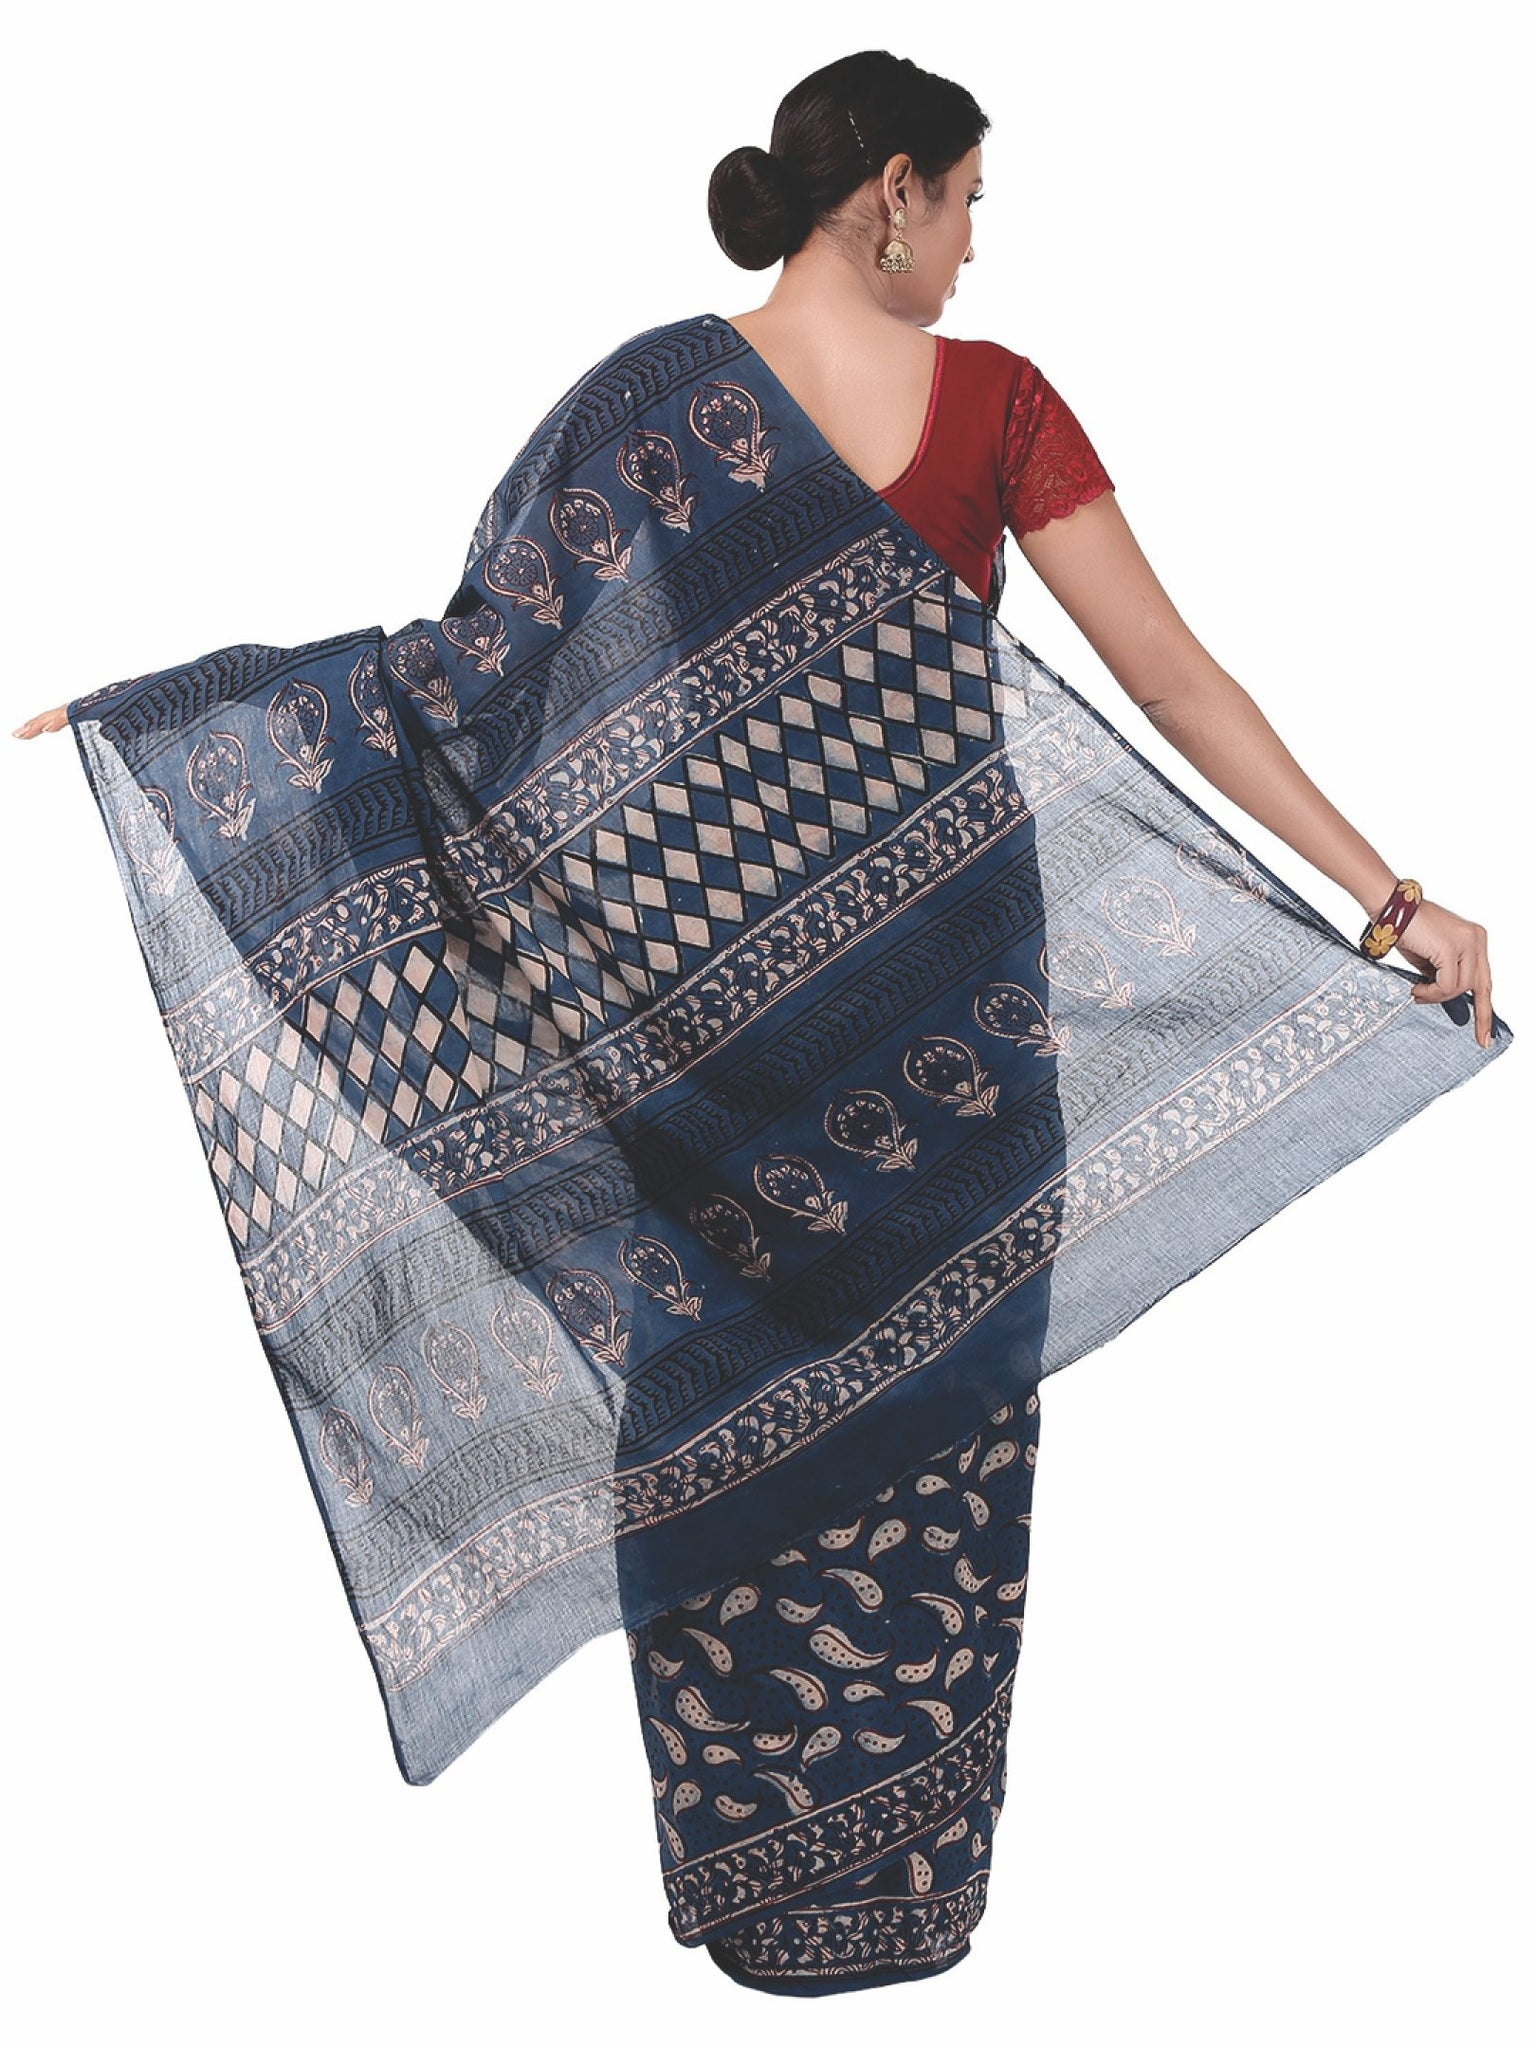 Indigo Tarapur Hand Block Print Handcrafted Cotton Saree-Saree-Kalakari India-BAPASA0029-Cotton, Geographical Indication, Hand Blocks, Hand Crafted, Heritage Prints, Indigo, Natural Dyes, Sarees, Sustainable Fabrics, Tarapur-[Linen,Ethnic,wear,Fashionista,Handloom,Handicraft,Indigo,blockprint,block,print,Cotton,Chanderi,Blue, latest,classy,party,bollywood,trendy,summer,style,traditional,formal,elegant,unique,style,hand,block,print, dabu,booti,gift,present,glamorous,affordable,collectible,Sari,Sa